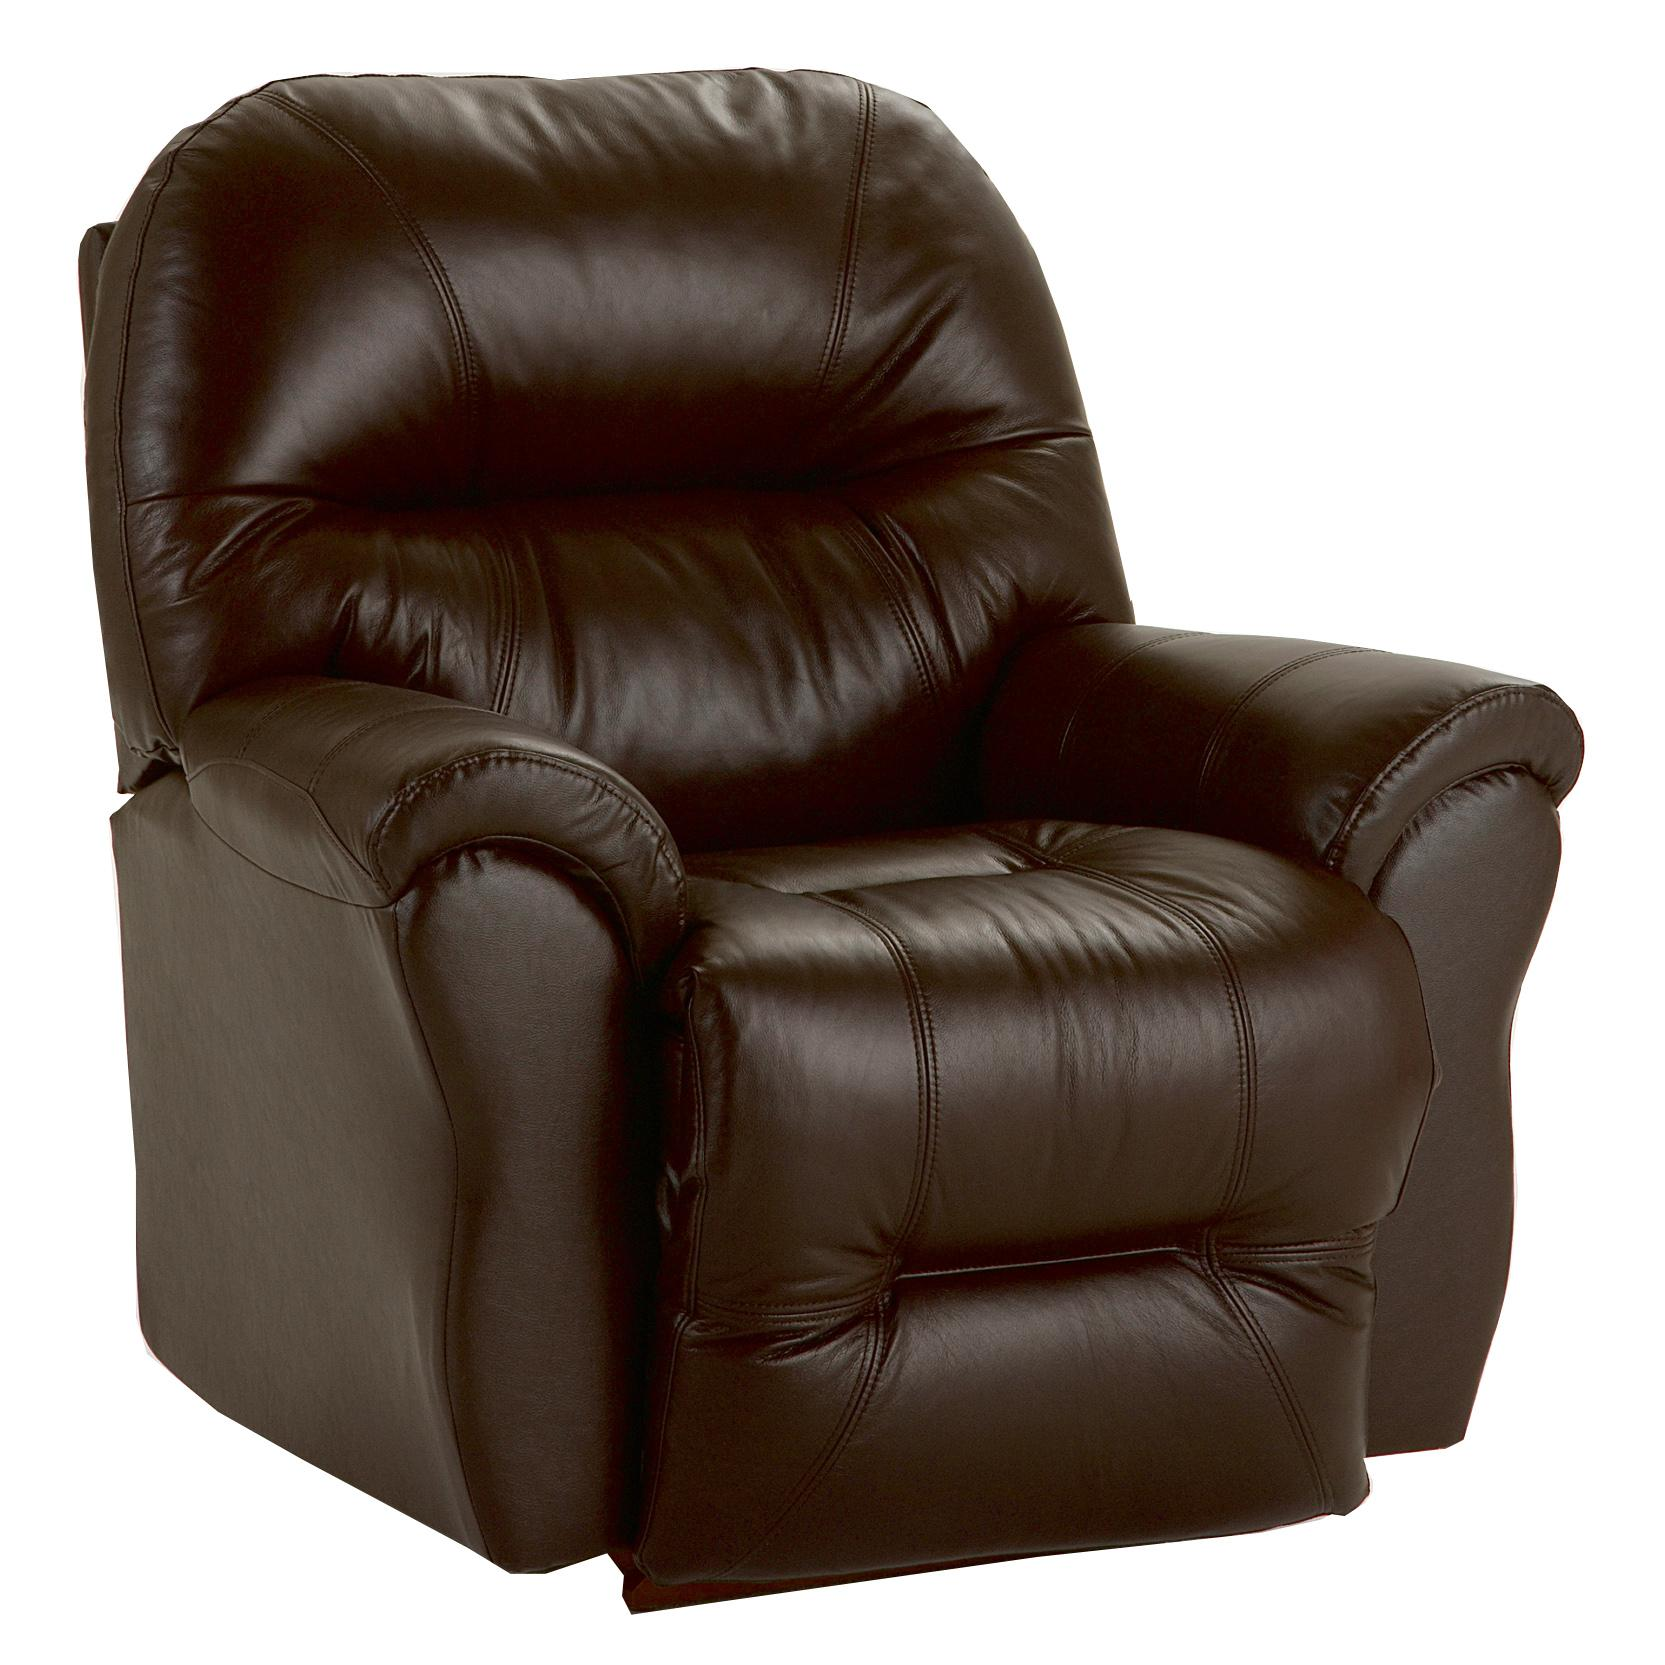 Best Home Furnishings Recliners - Medium Bodie Rocker Recliner - Item Number: 8NW17LV